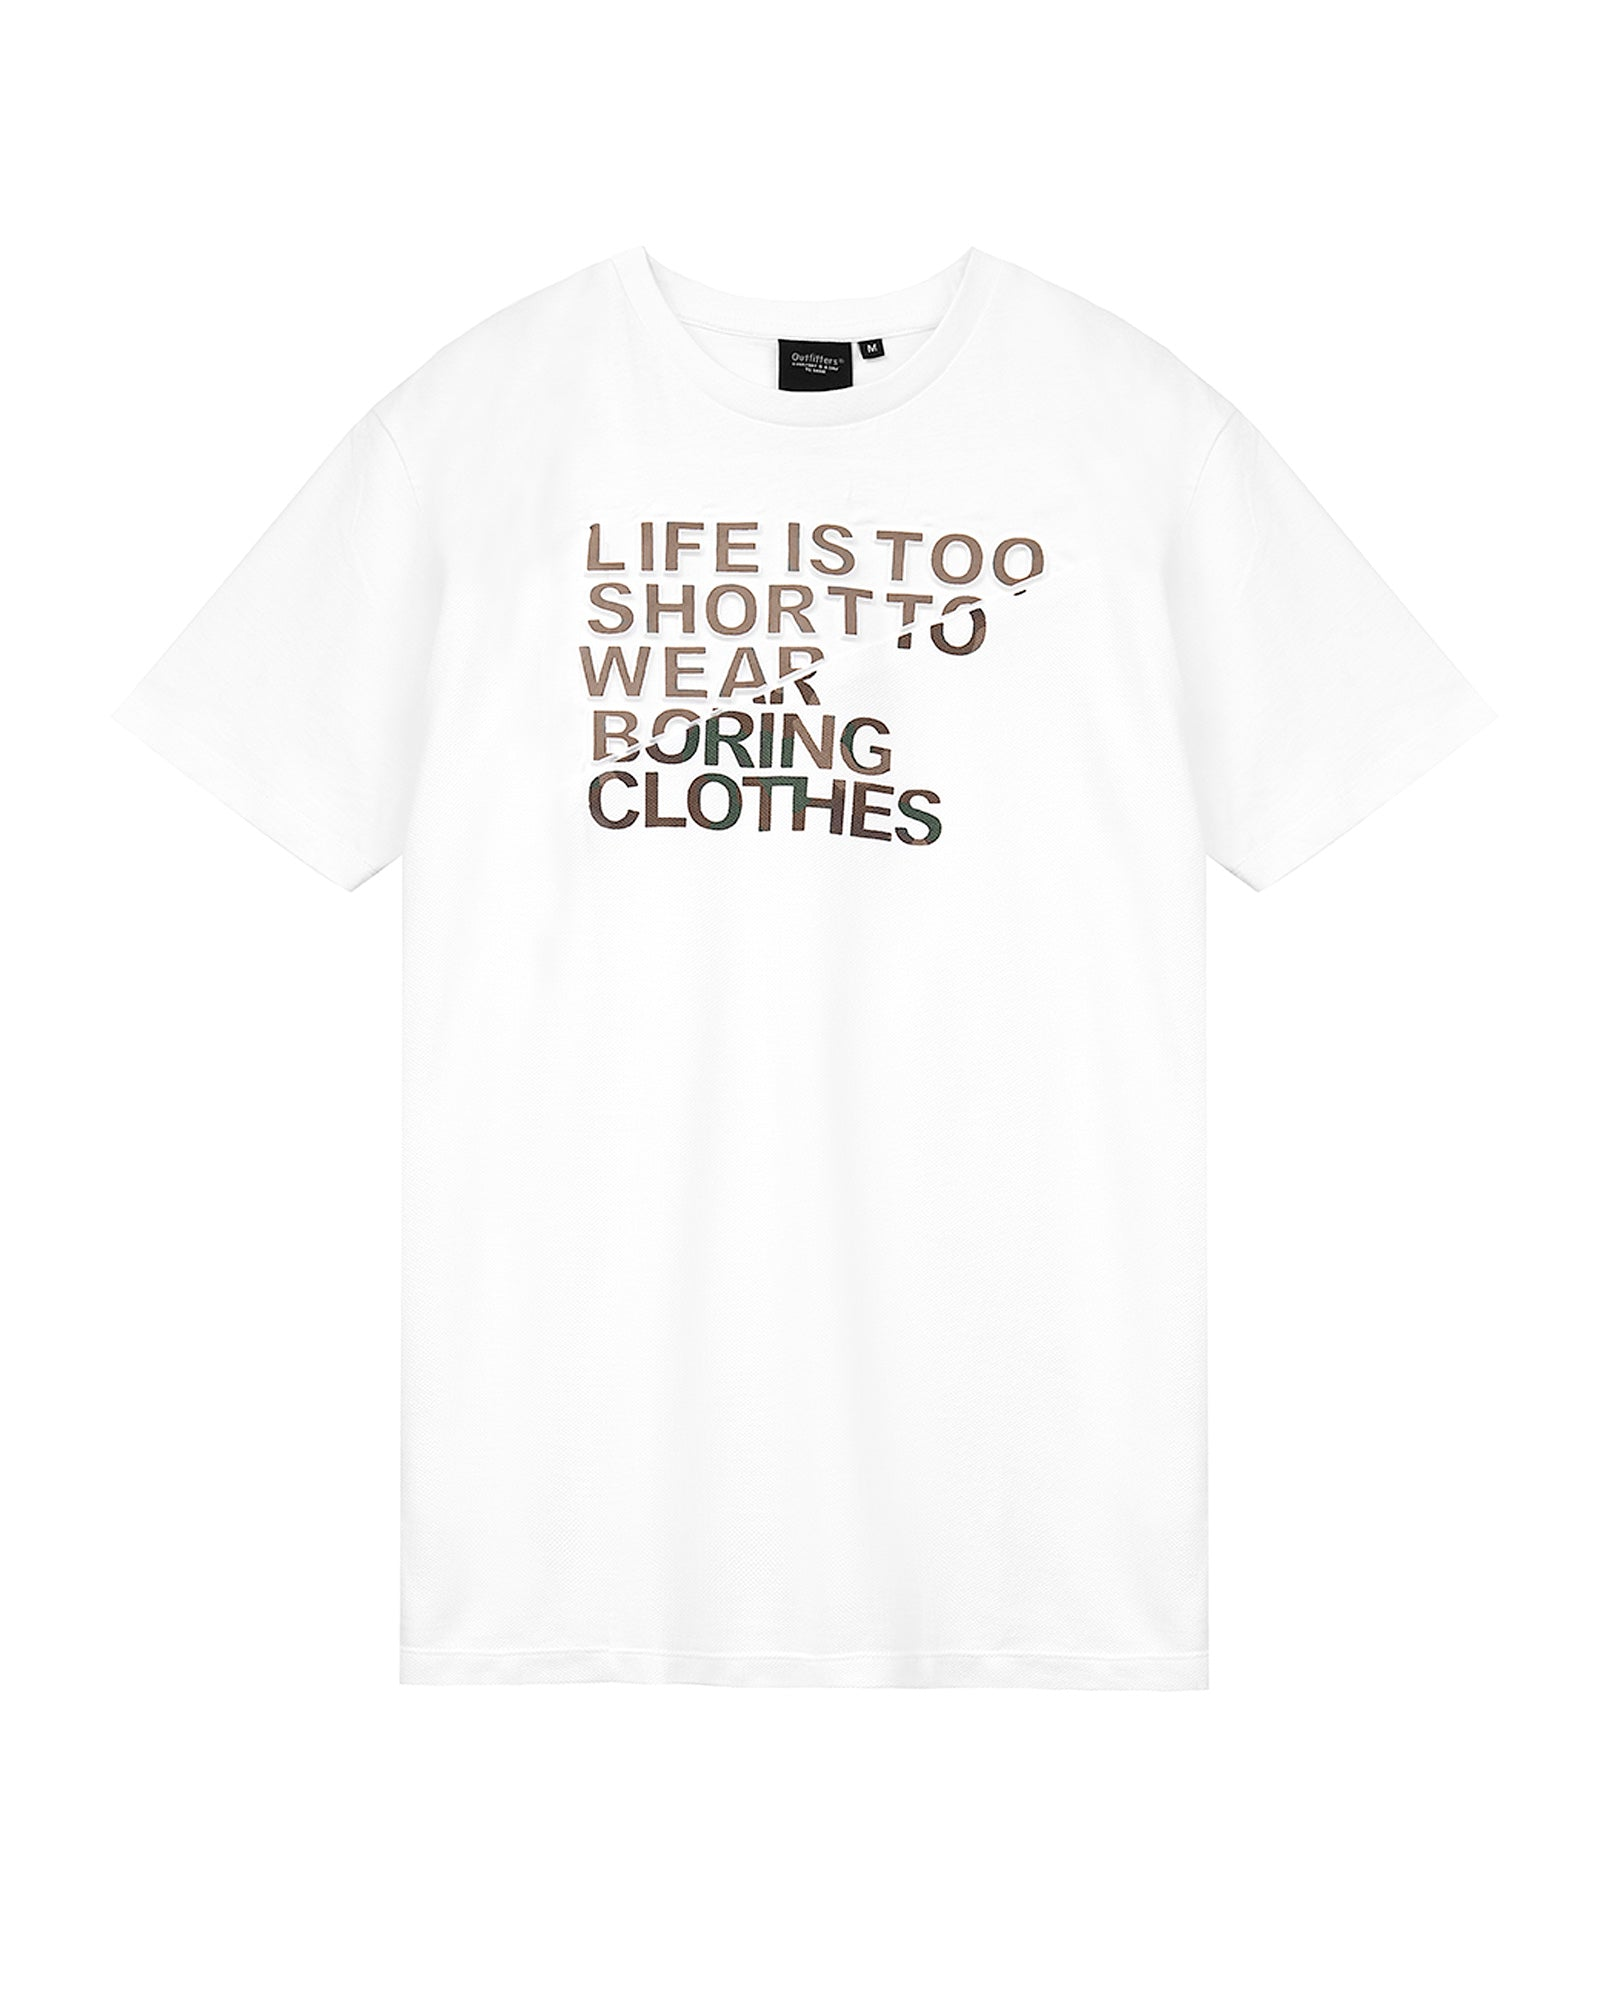 Motivational Slogan Tee